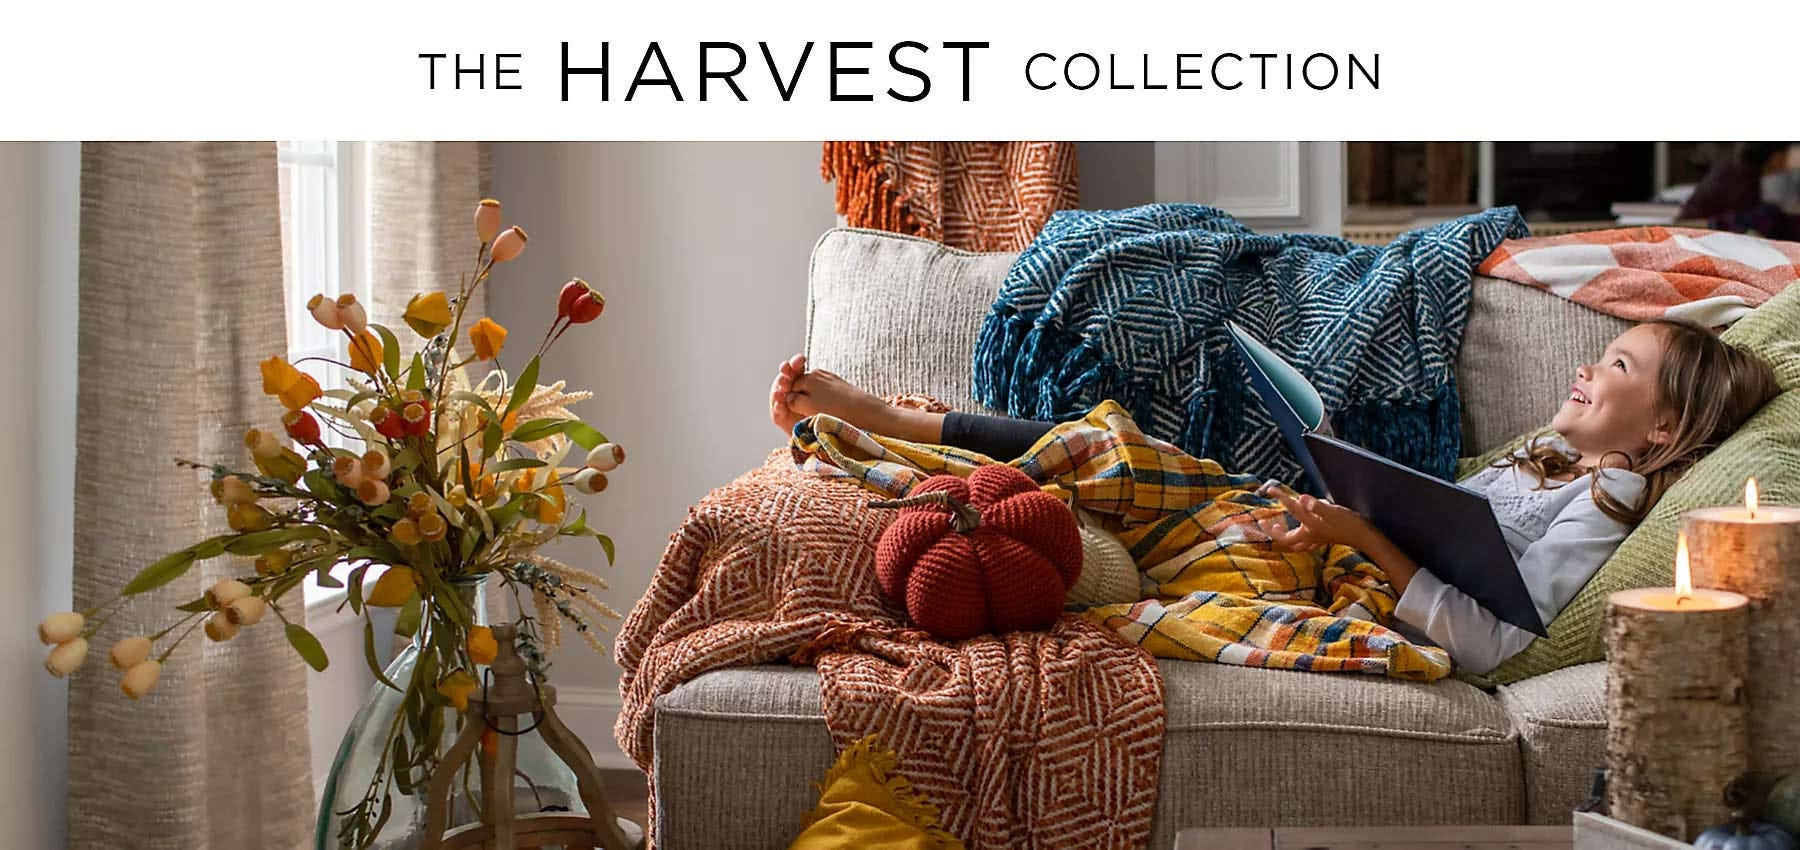 A little girl curled up on a couch with blankets and a book in a room decorated with harvest themes.